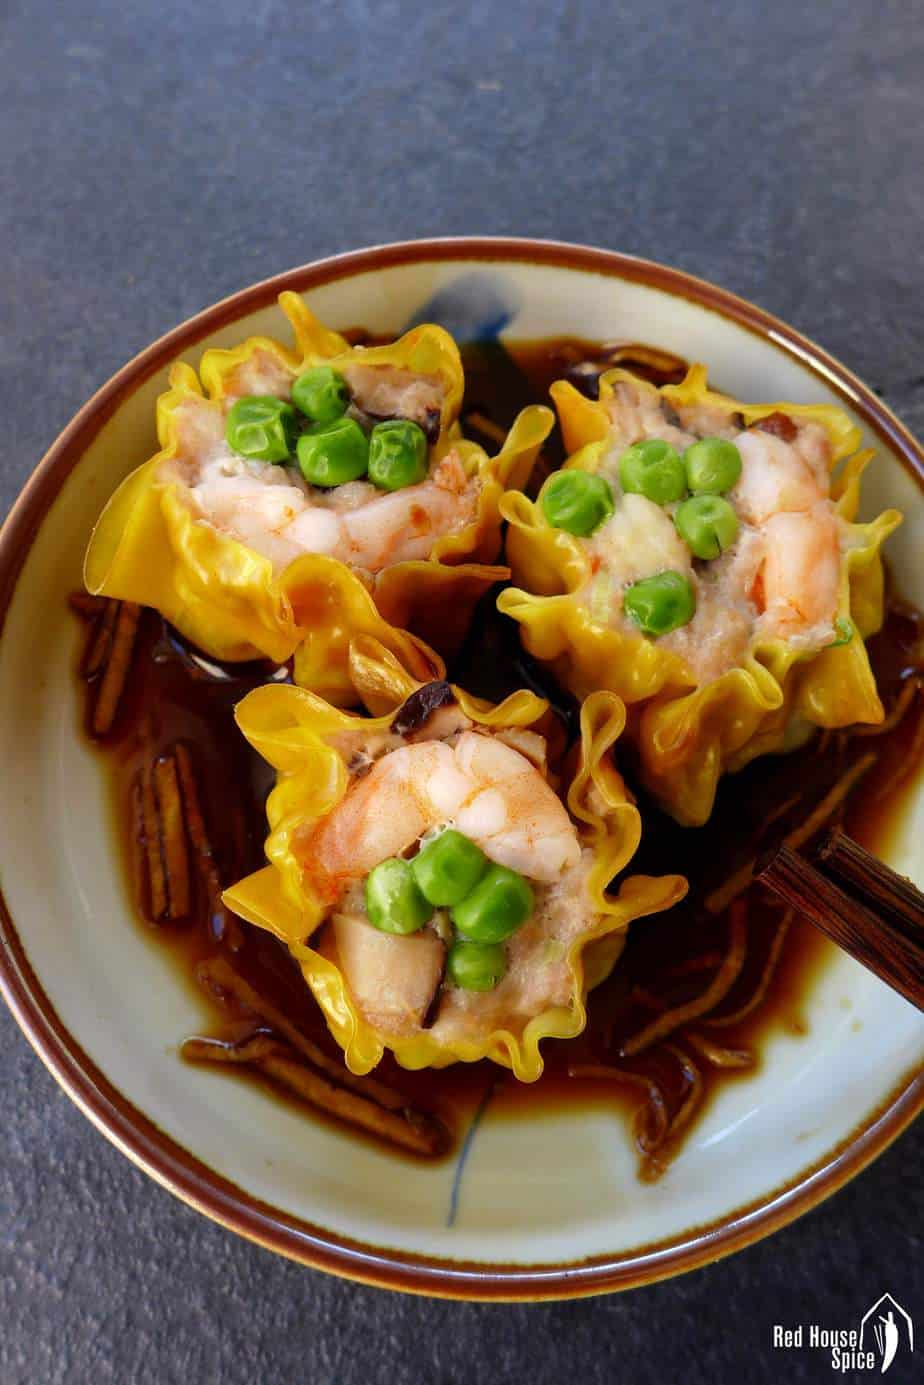 One of the most popular Cantonese dim sum dishes, shrimp & pork shumai is delicate, tasty and very easy to make in your own kitchen.